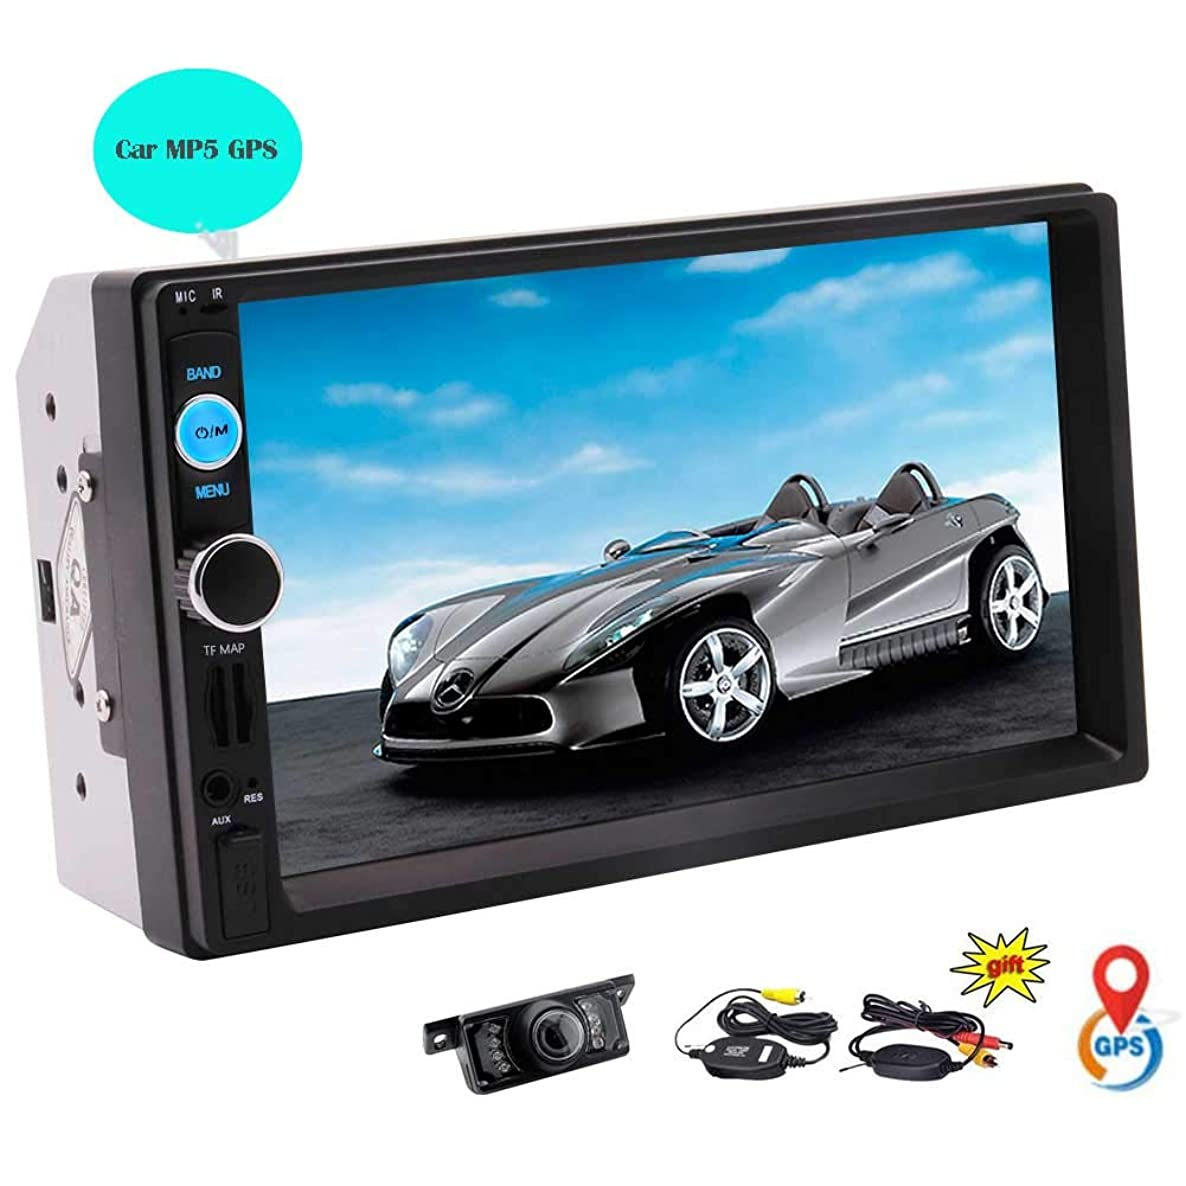 Eincar 7020G 2 DIN Wince MP5 Car Media Player Bluetooth Handsfree Calls Mirror Link GPS Navigation Free Wireless Rear-View Camera AUX/USB/SD/BT/FM with Built-in GPS Map Card Coloful Key Lights Remote